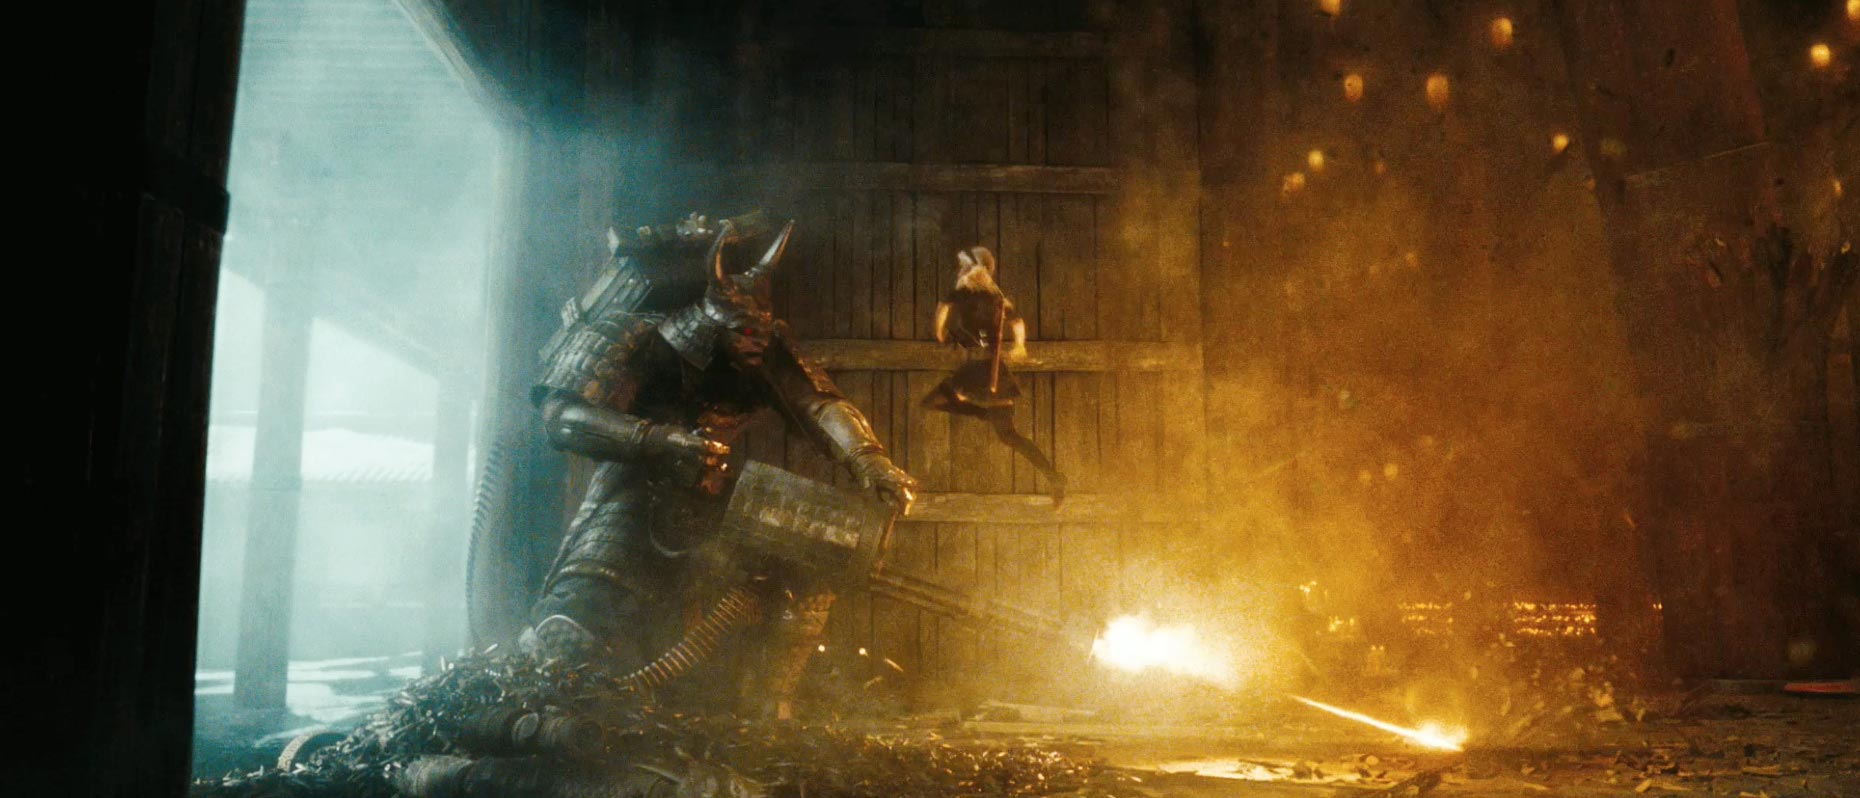 Une collection de désirs d'images : Sucker Punch de Zack Snyder.